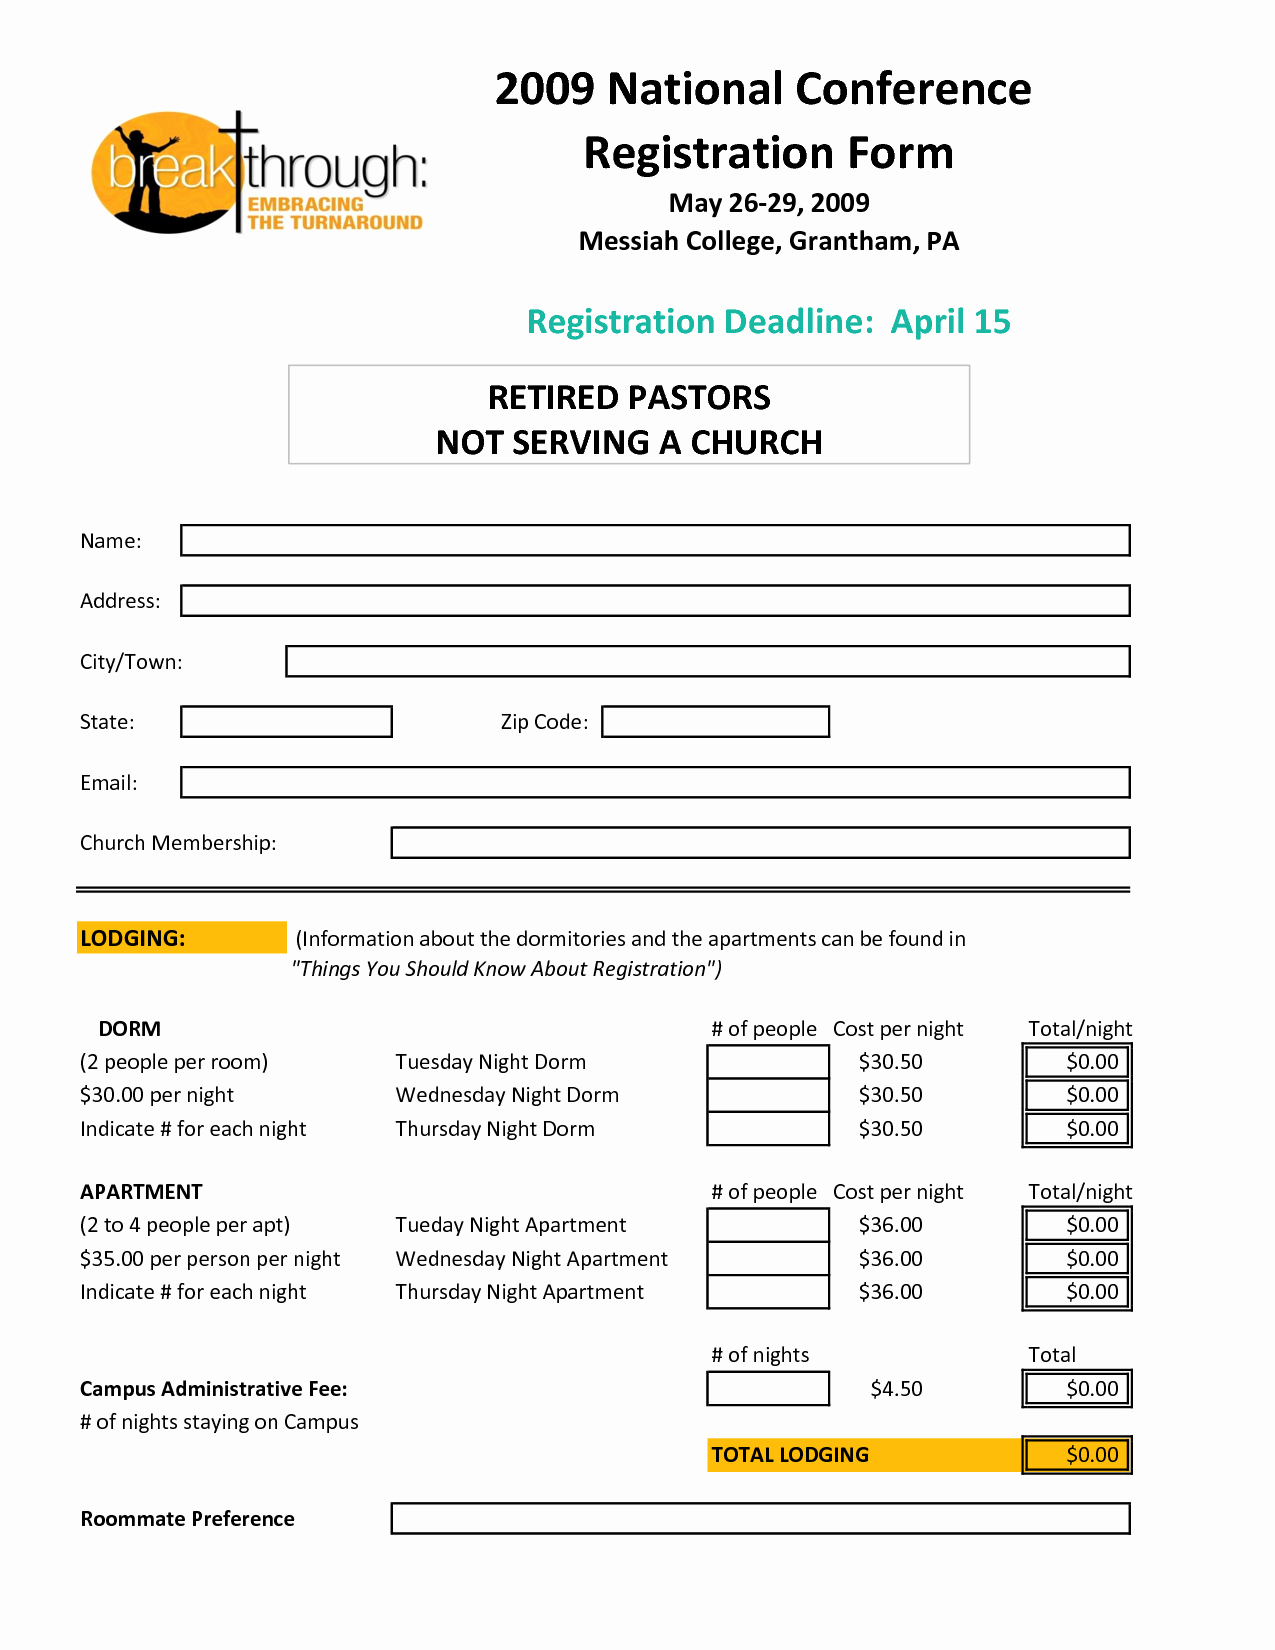 Registration form Template Word Awesome Registration form Template